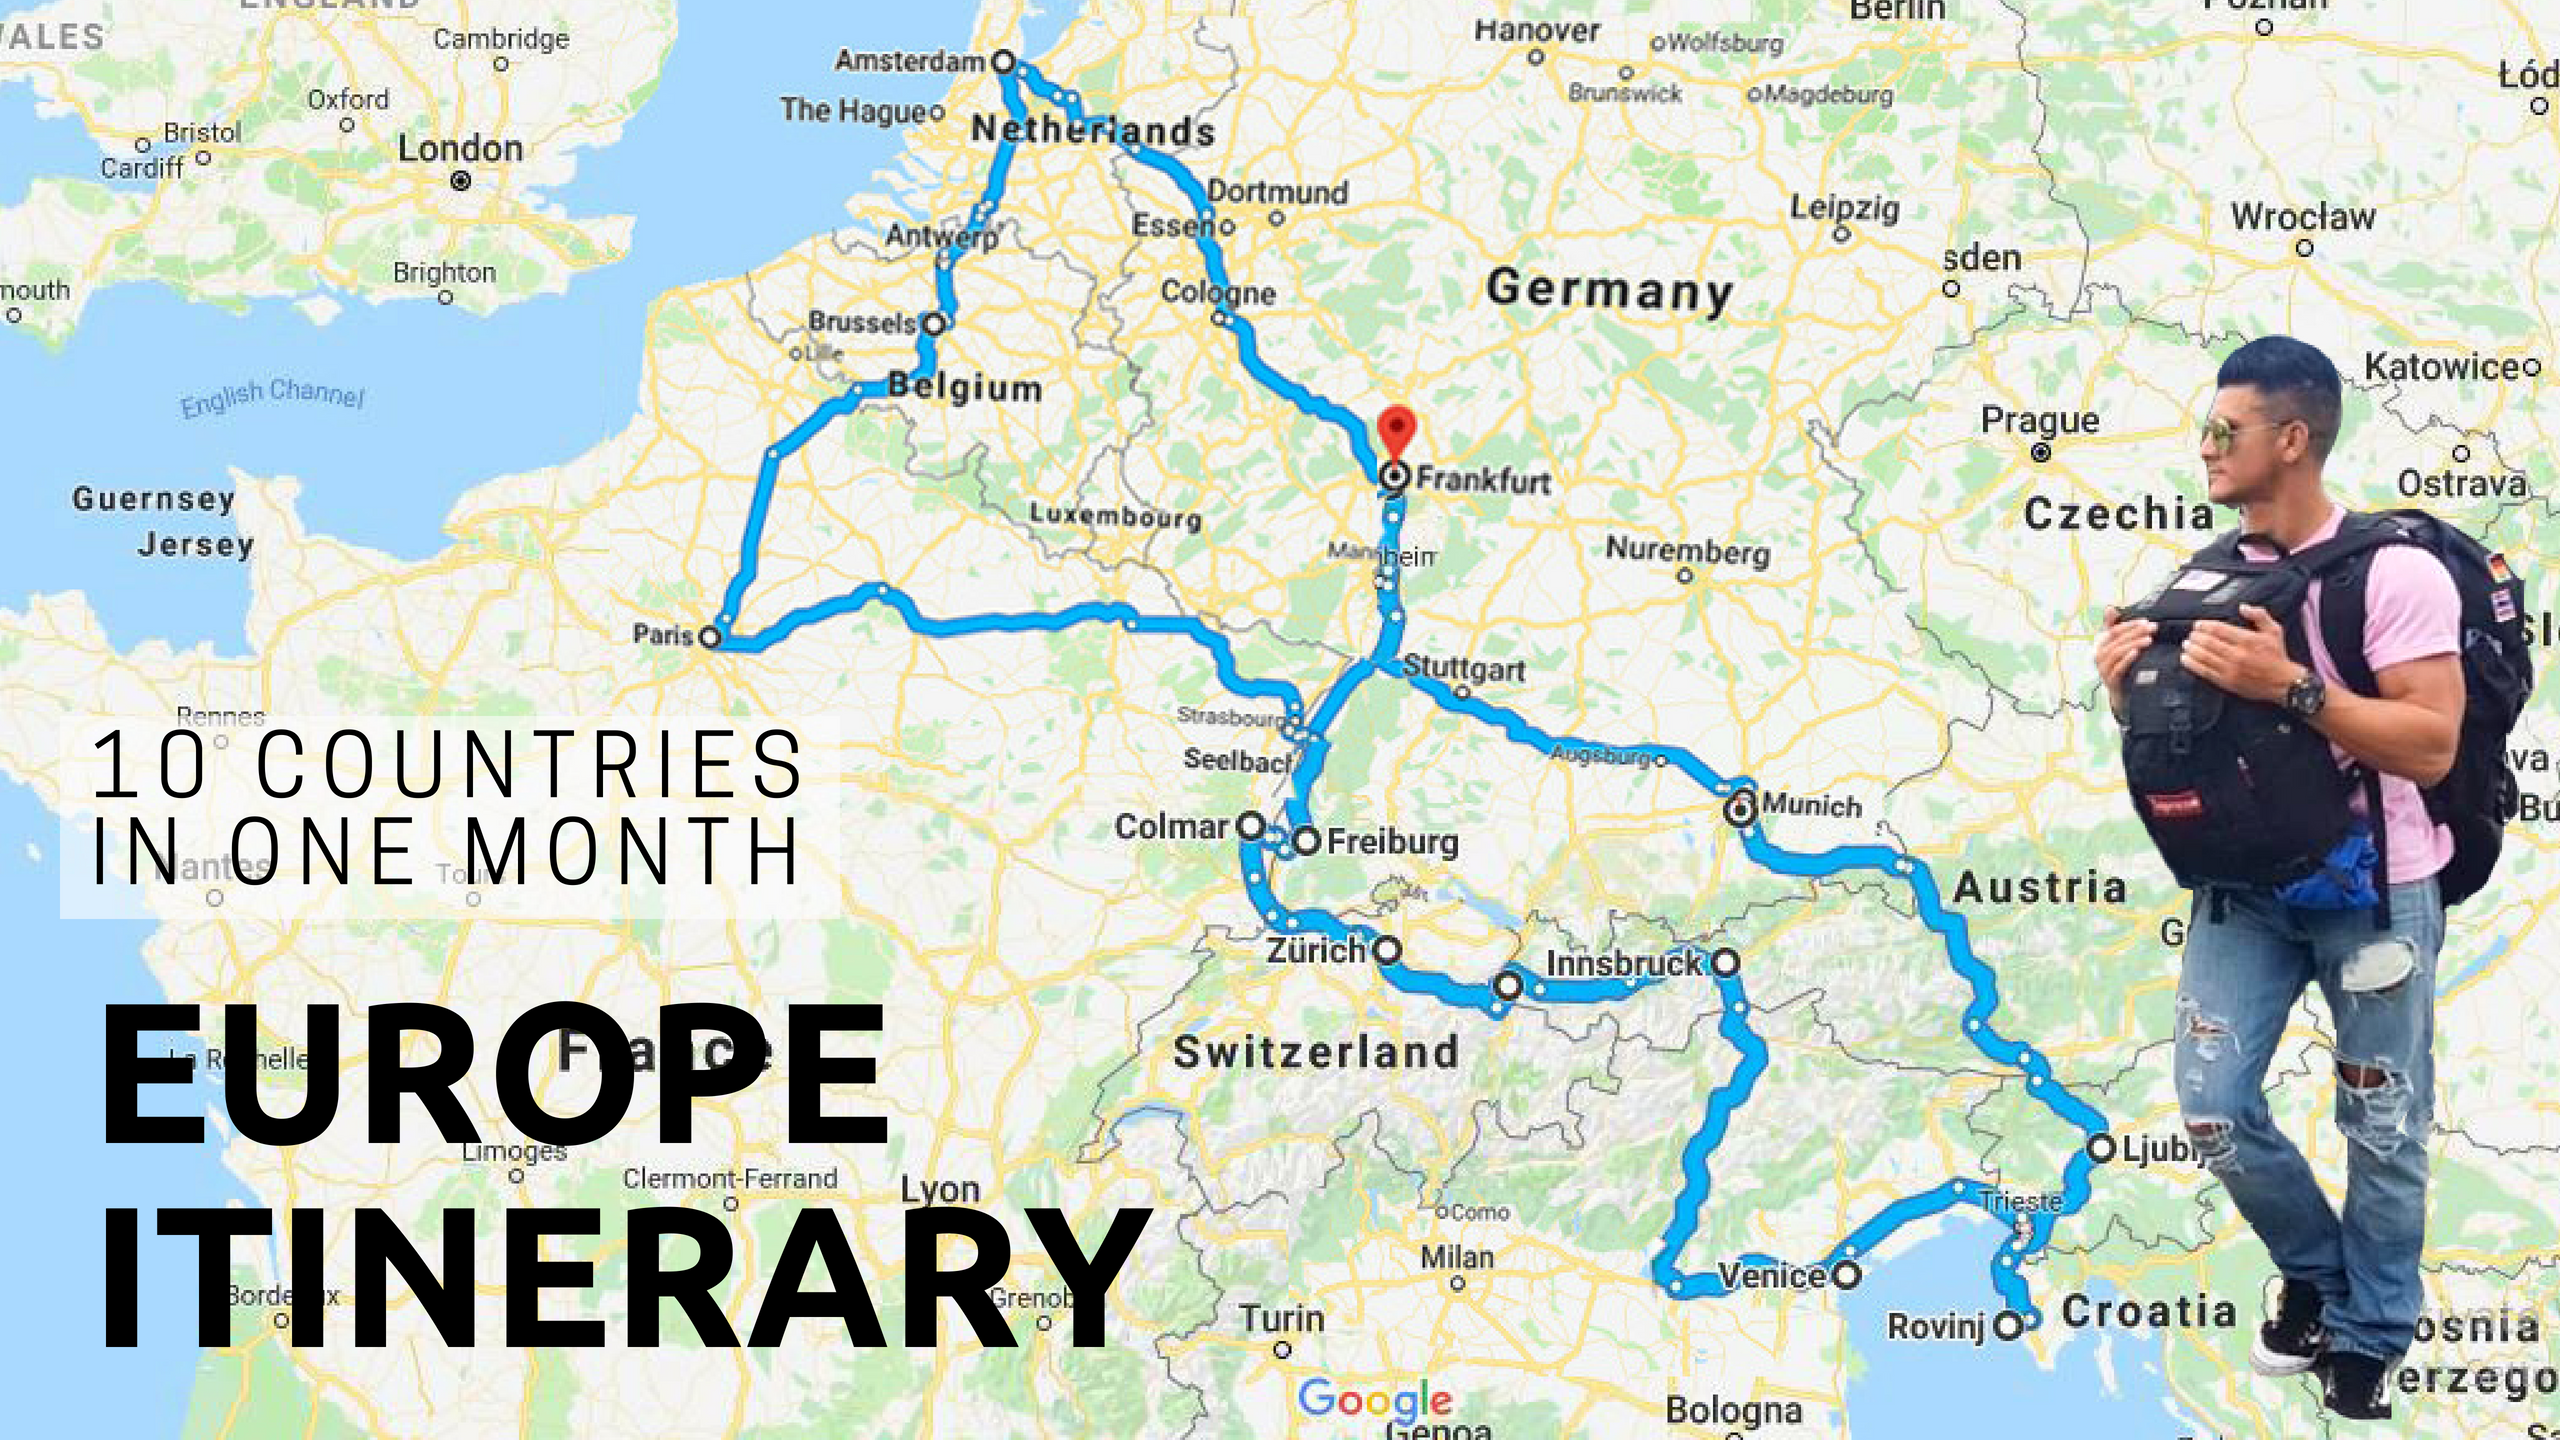 Europe Itinerary, Europe Itinerary: 10 Countries in 1 Month